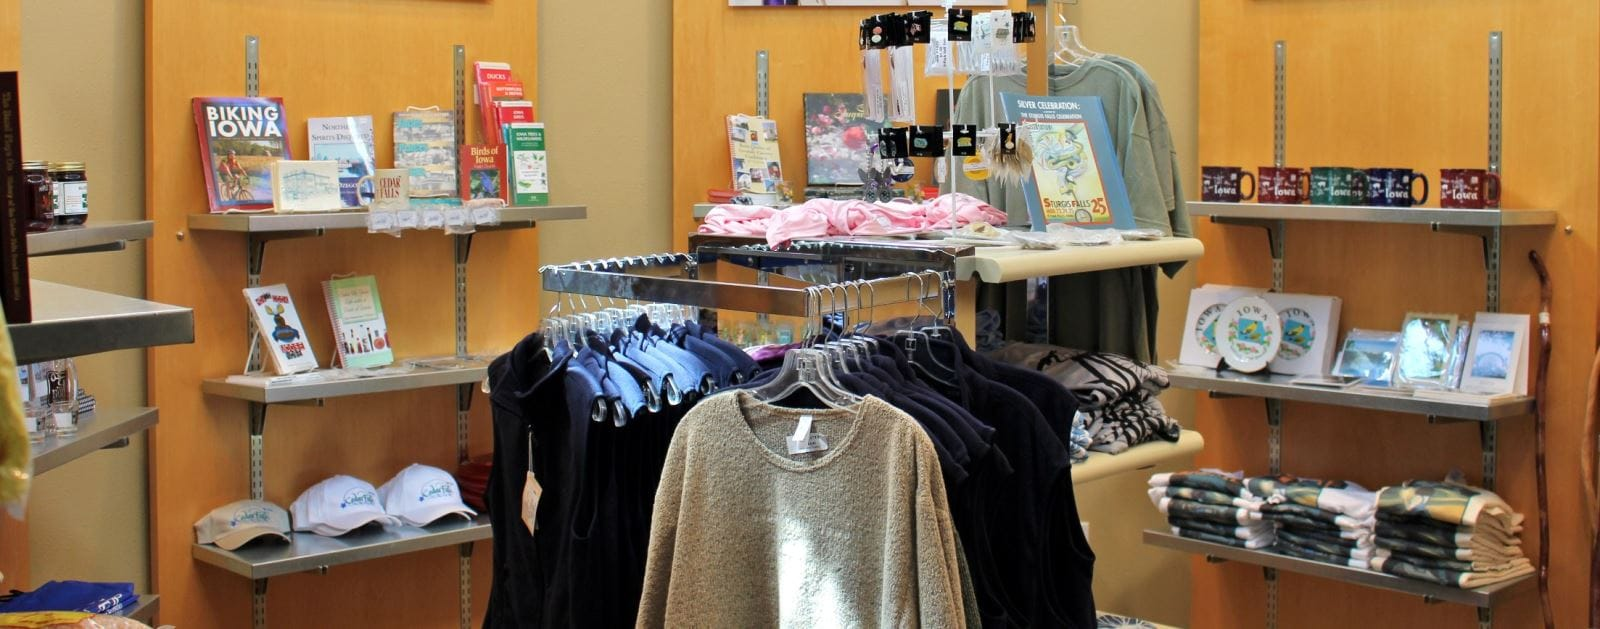 5ba8d6a27210b 5 Gifts You Can Find at the Cedar Falls Visitor Center Gift Shop ...